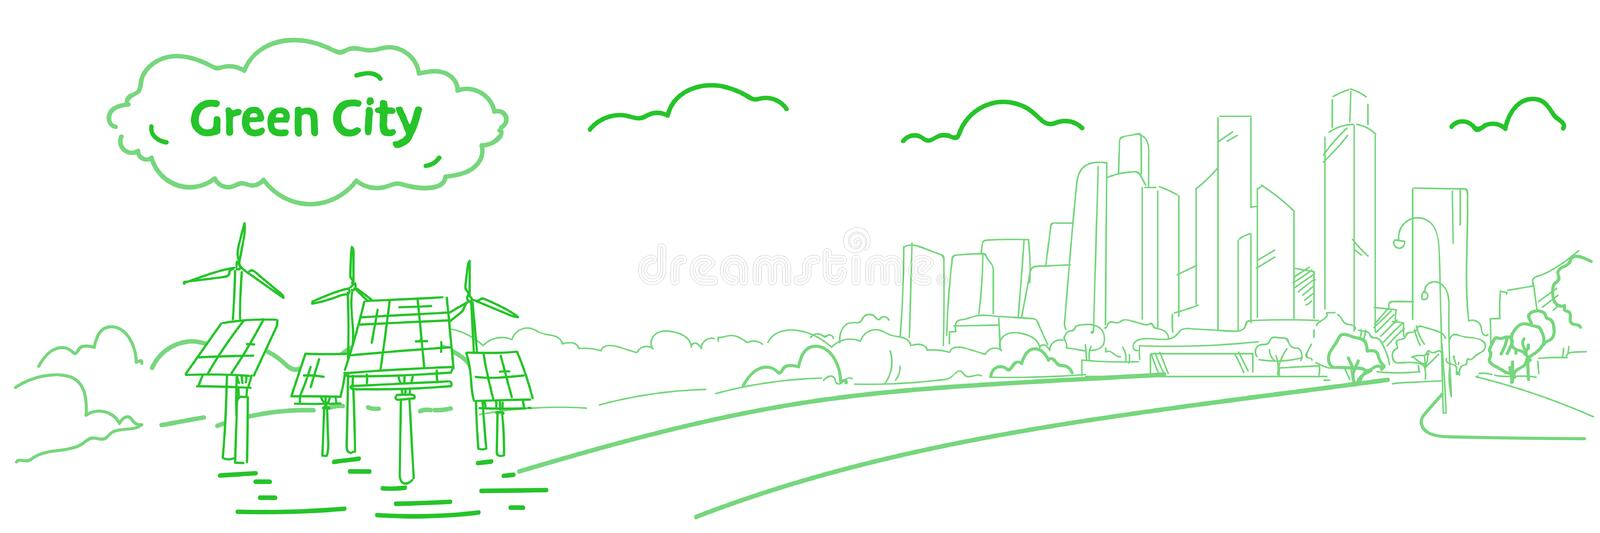 Modern eco city with wind turbines and solar panels green energy concept skyscraper cityscape background sketch flow vector illustration